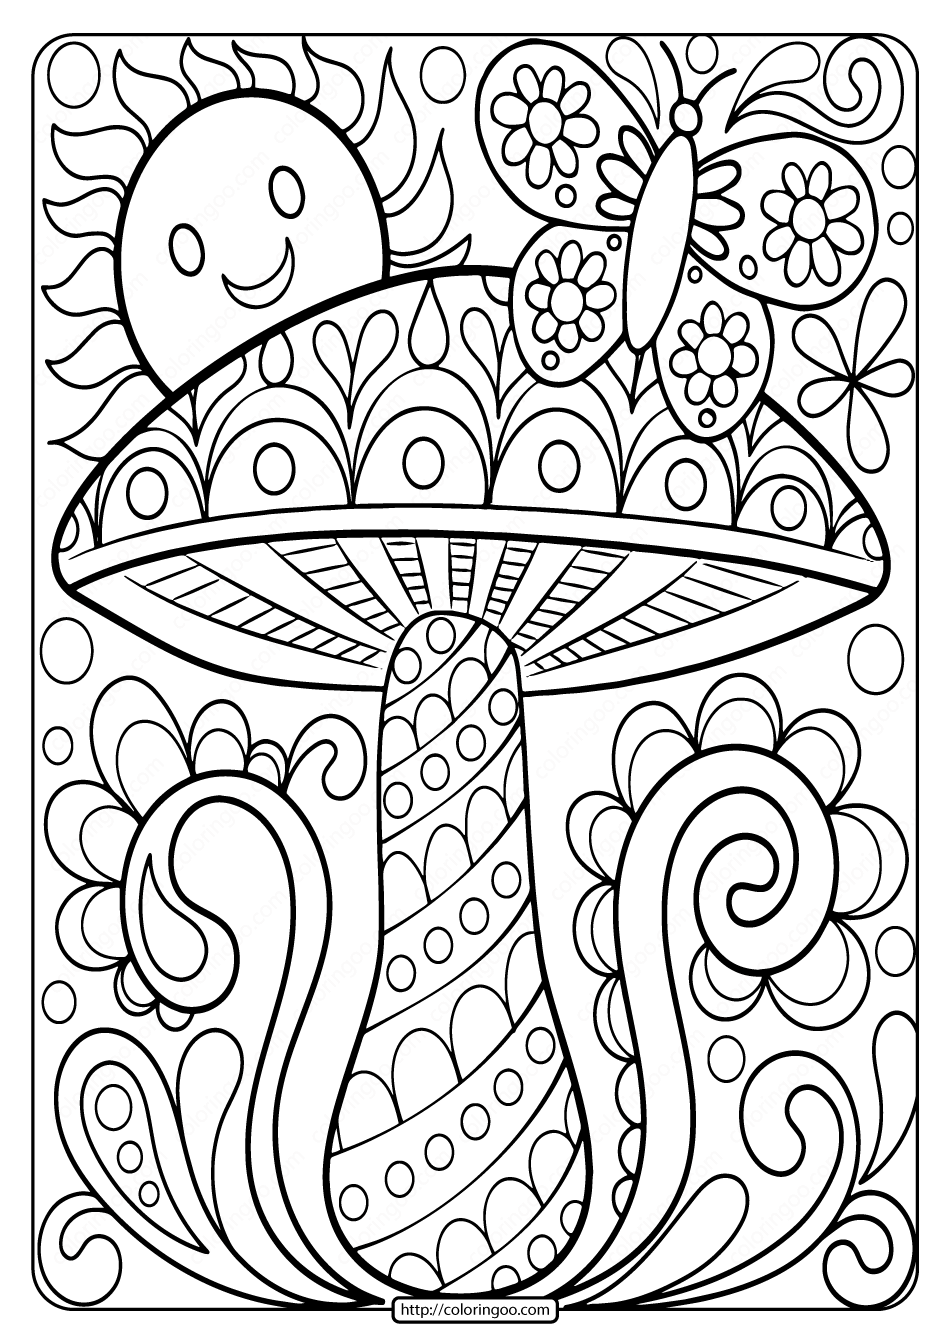 coloring sheet for adults adult coloring pages animals best coloring pages for kids coloring for sheet adults